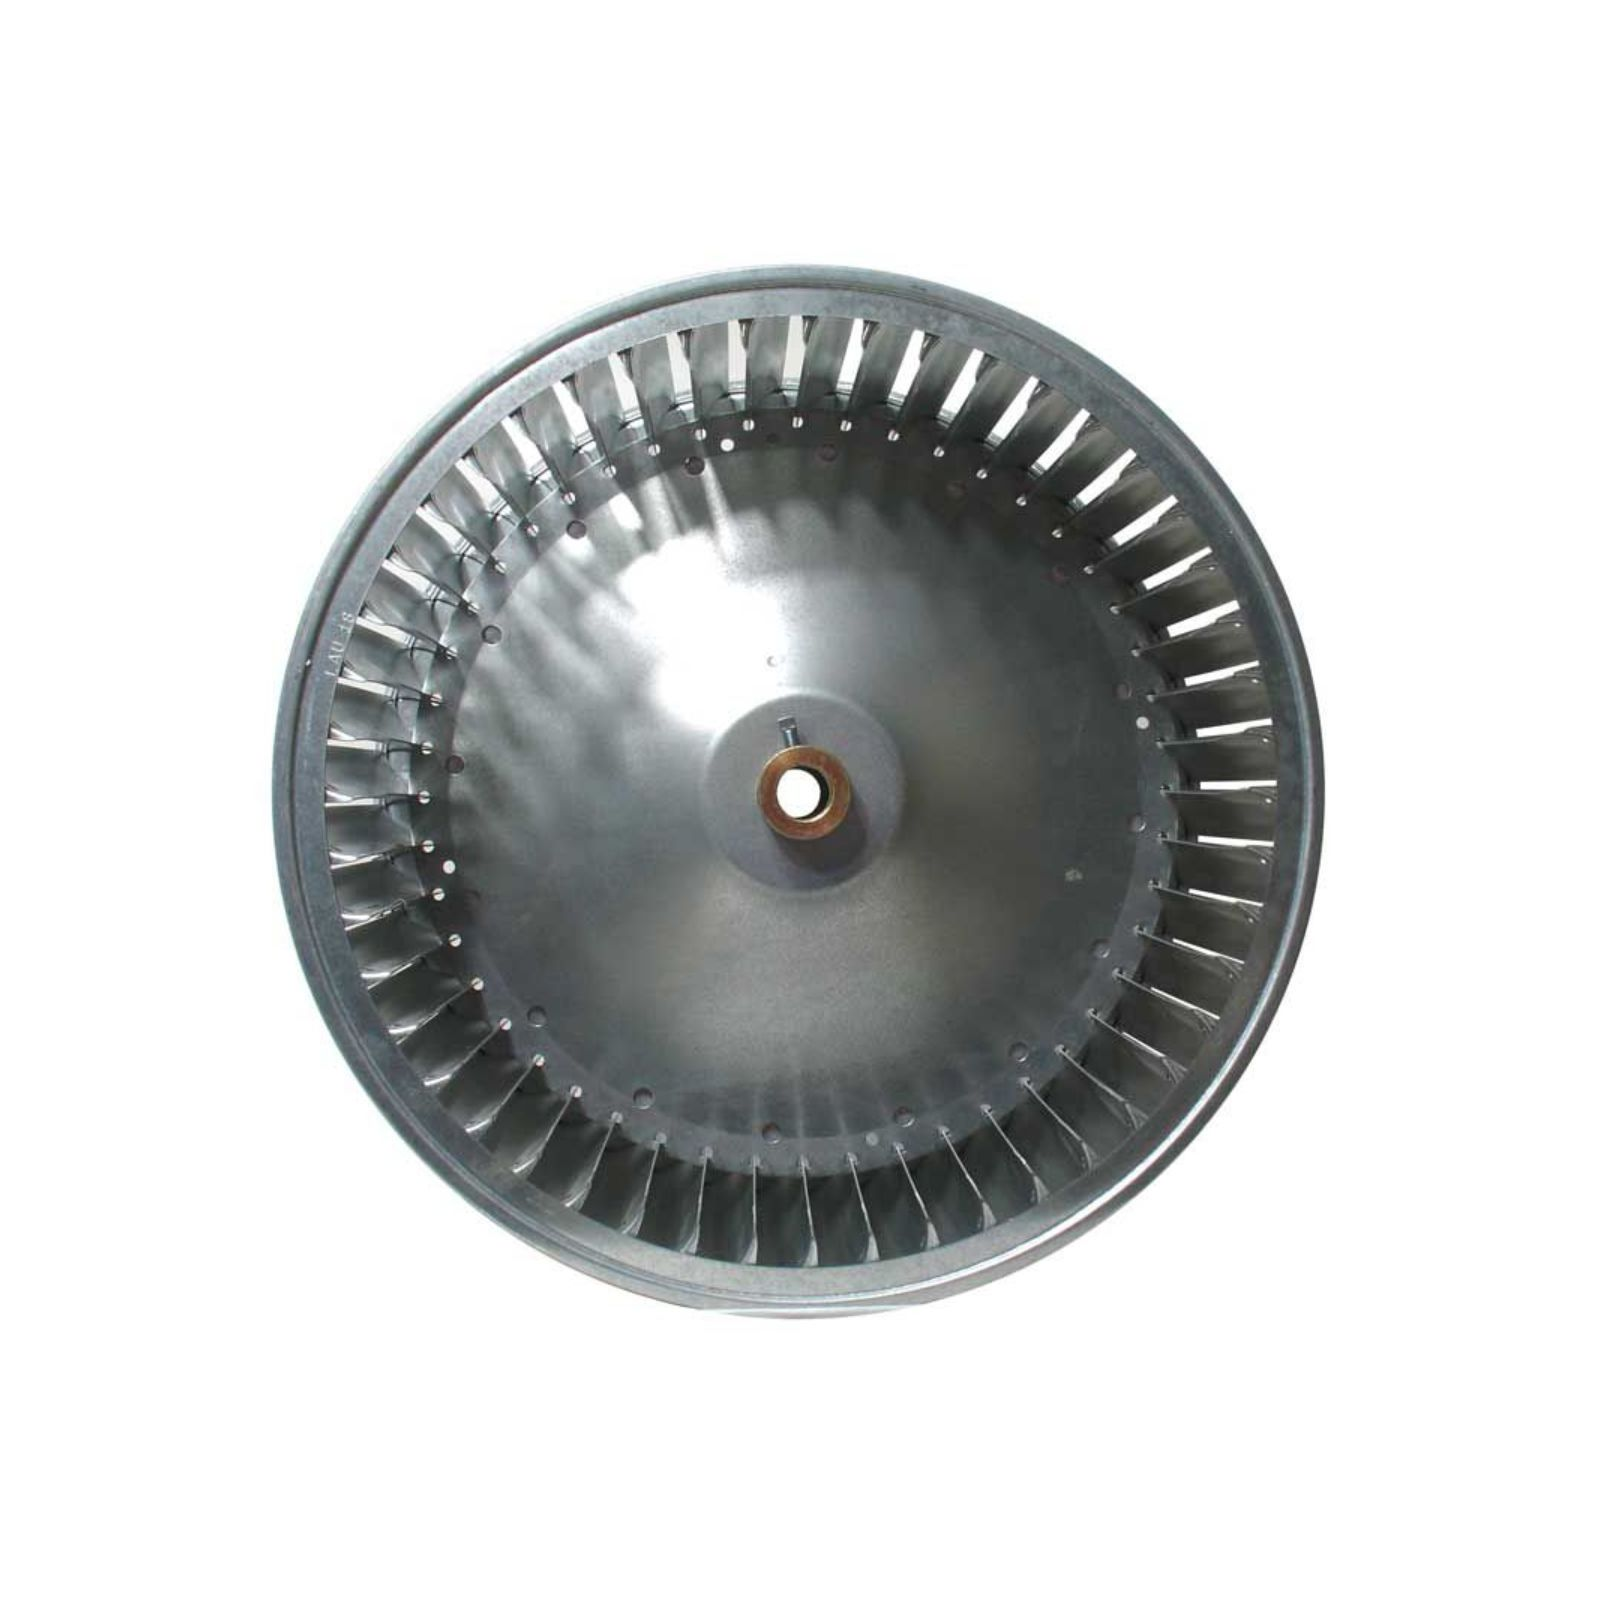 "PROTECH 70-23110-30 - Blower Wheel, 10"" x 10"", CCW"